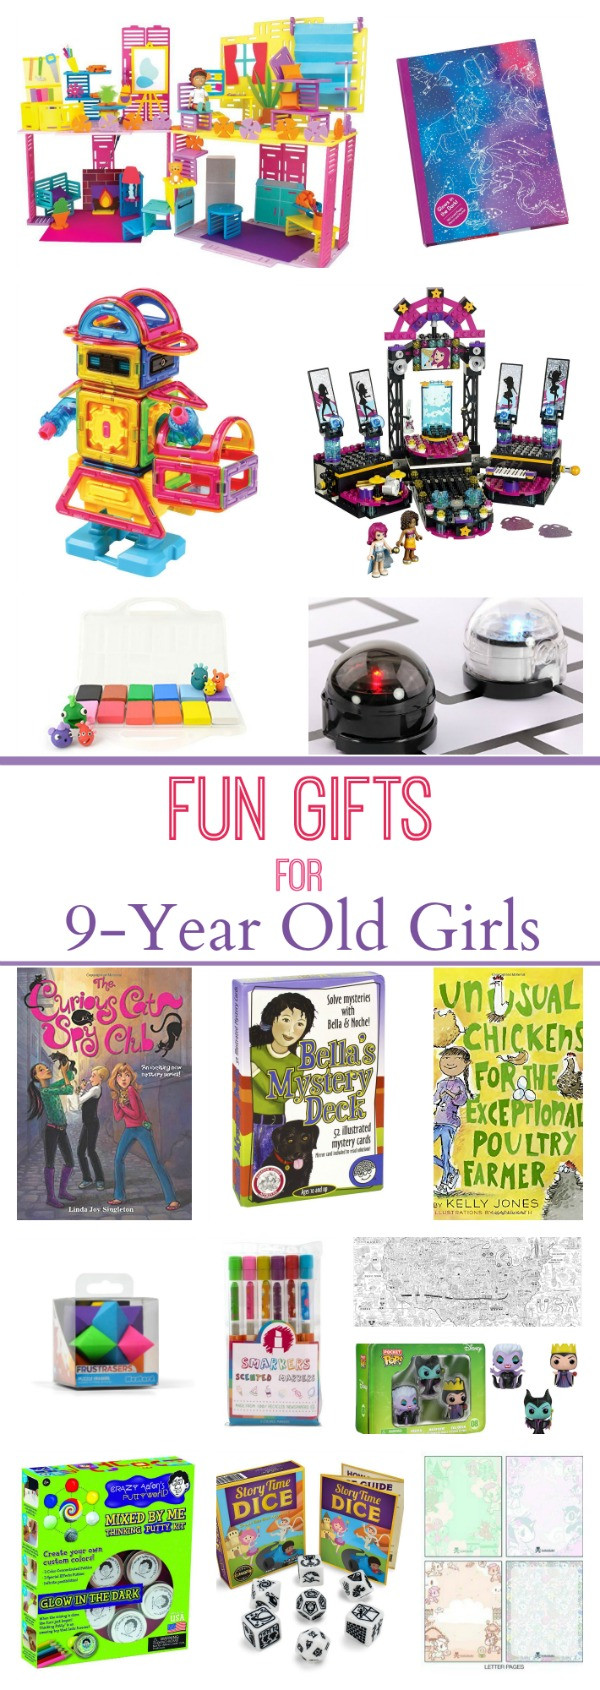 Best ideas about Gift Ideas For 9 Year Old Girls . Save or Pin Gifts for 9 Year Old Girls Now.